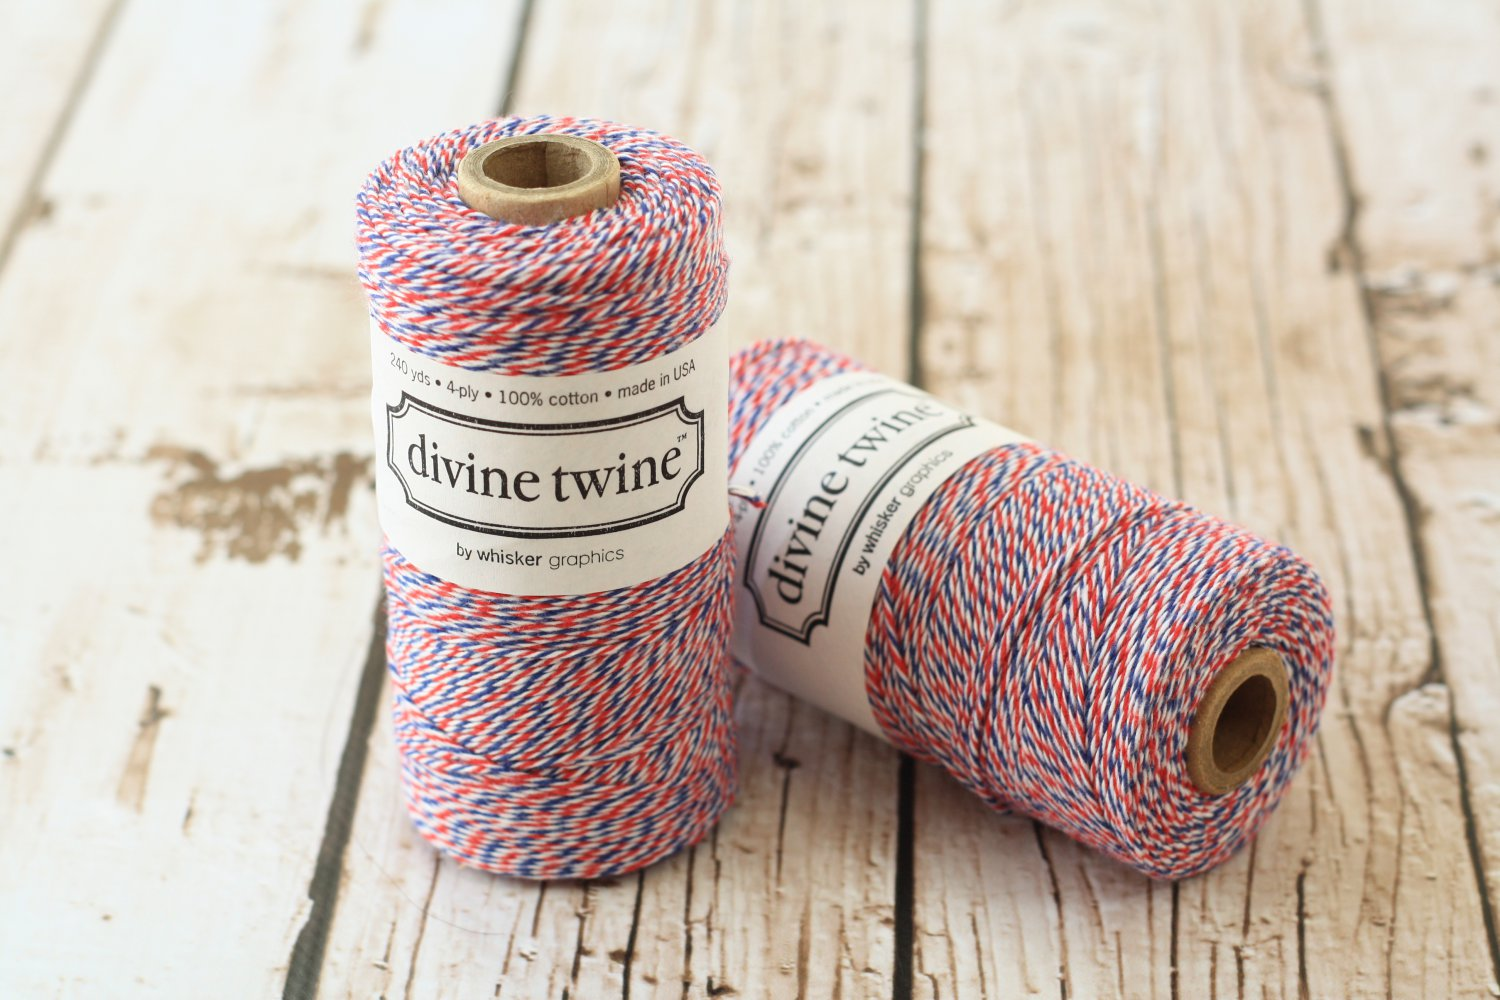 Airmail Divine Twine 240yd string spool